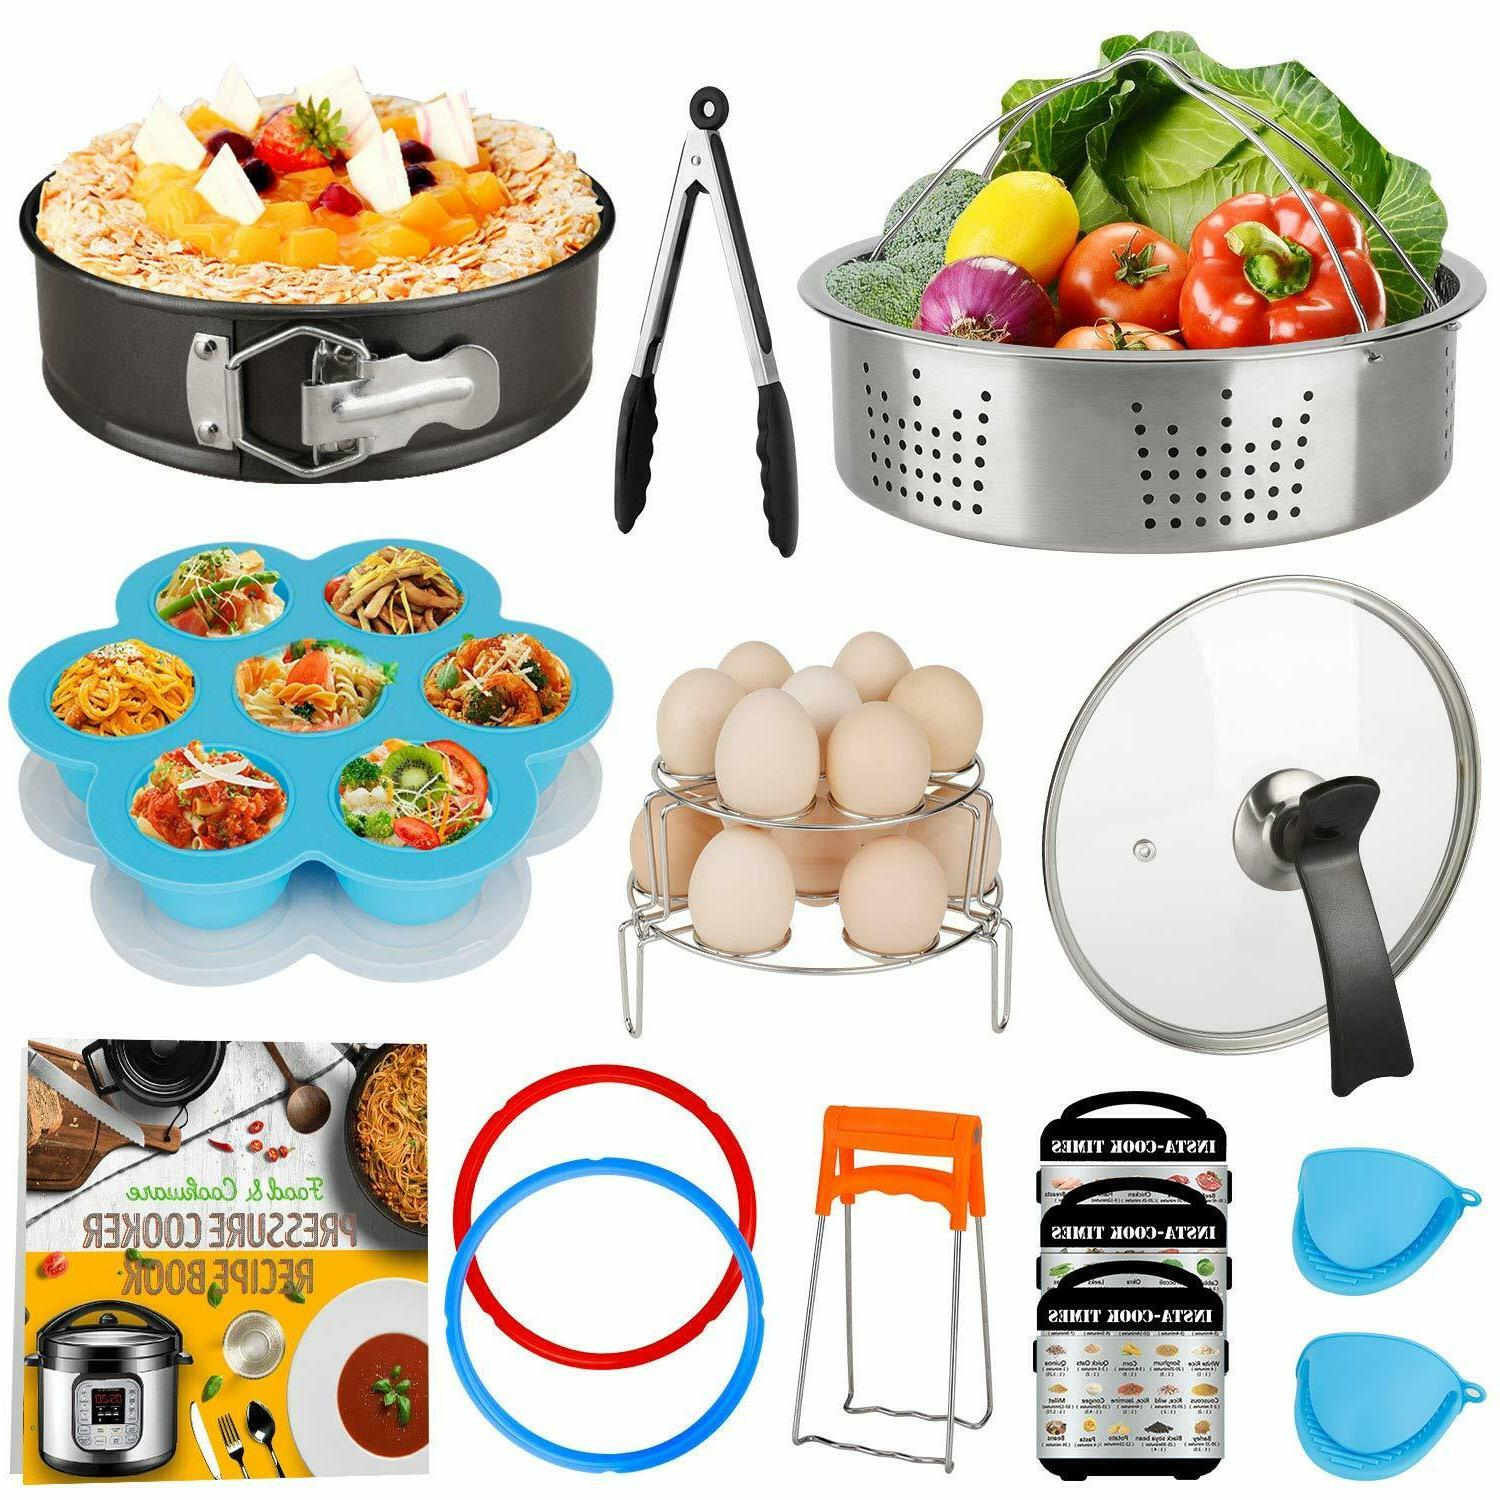 14 pieces pressure cooker accessories set compatible